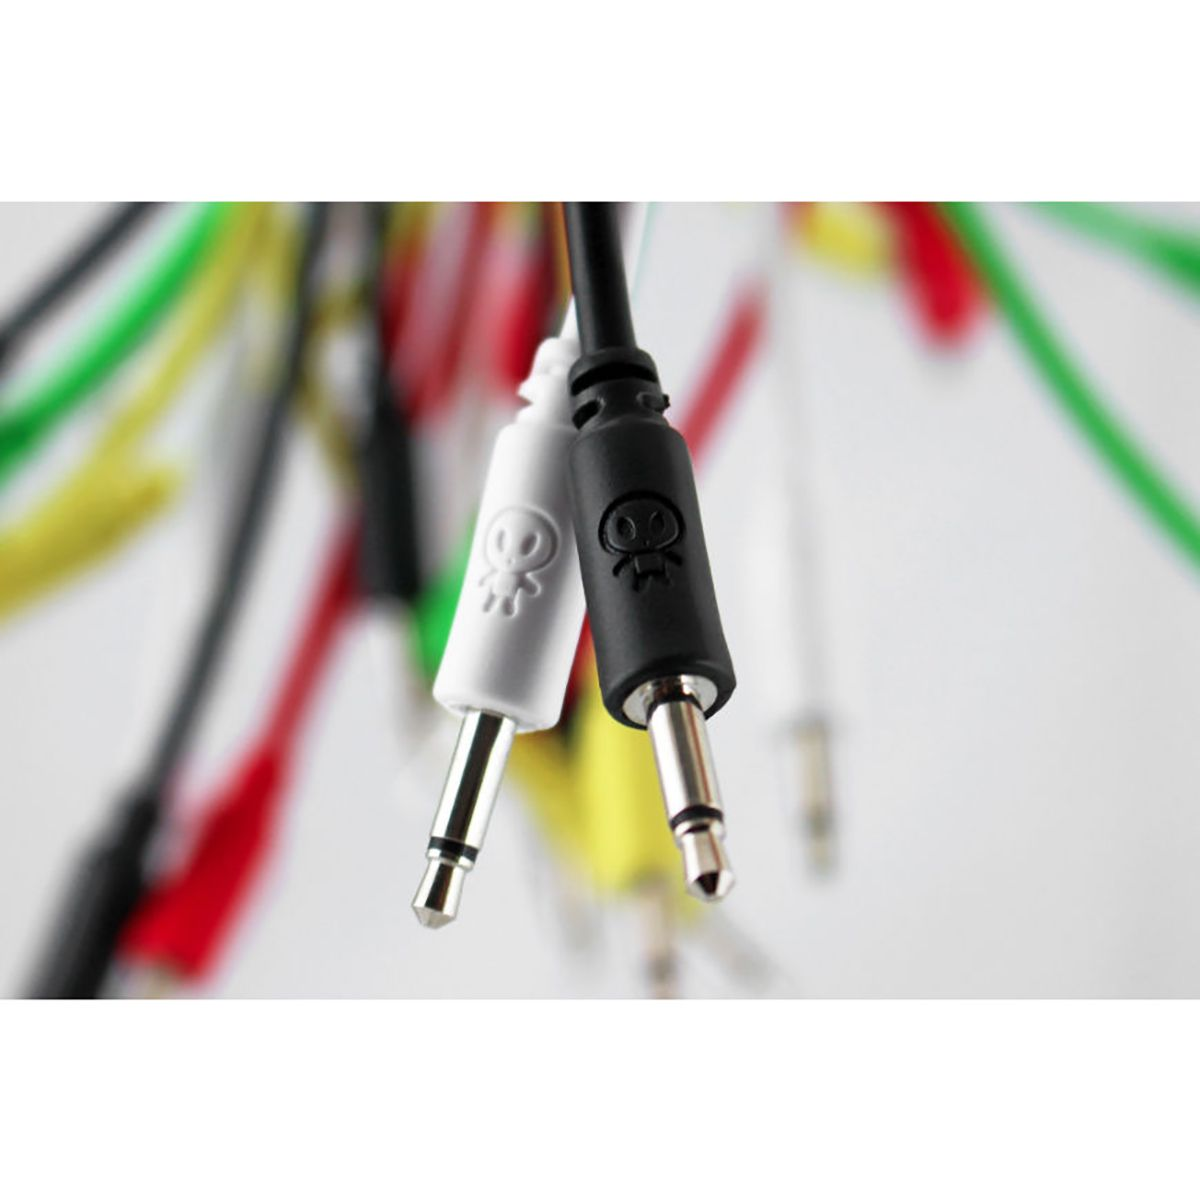 Erica Synths Eurorack Patch Cables 5 Pack (10cm Green)